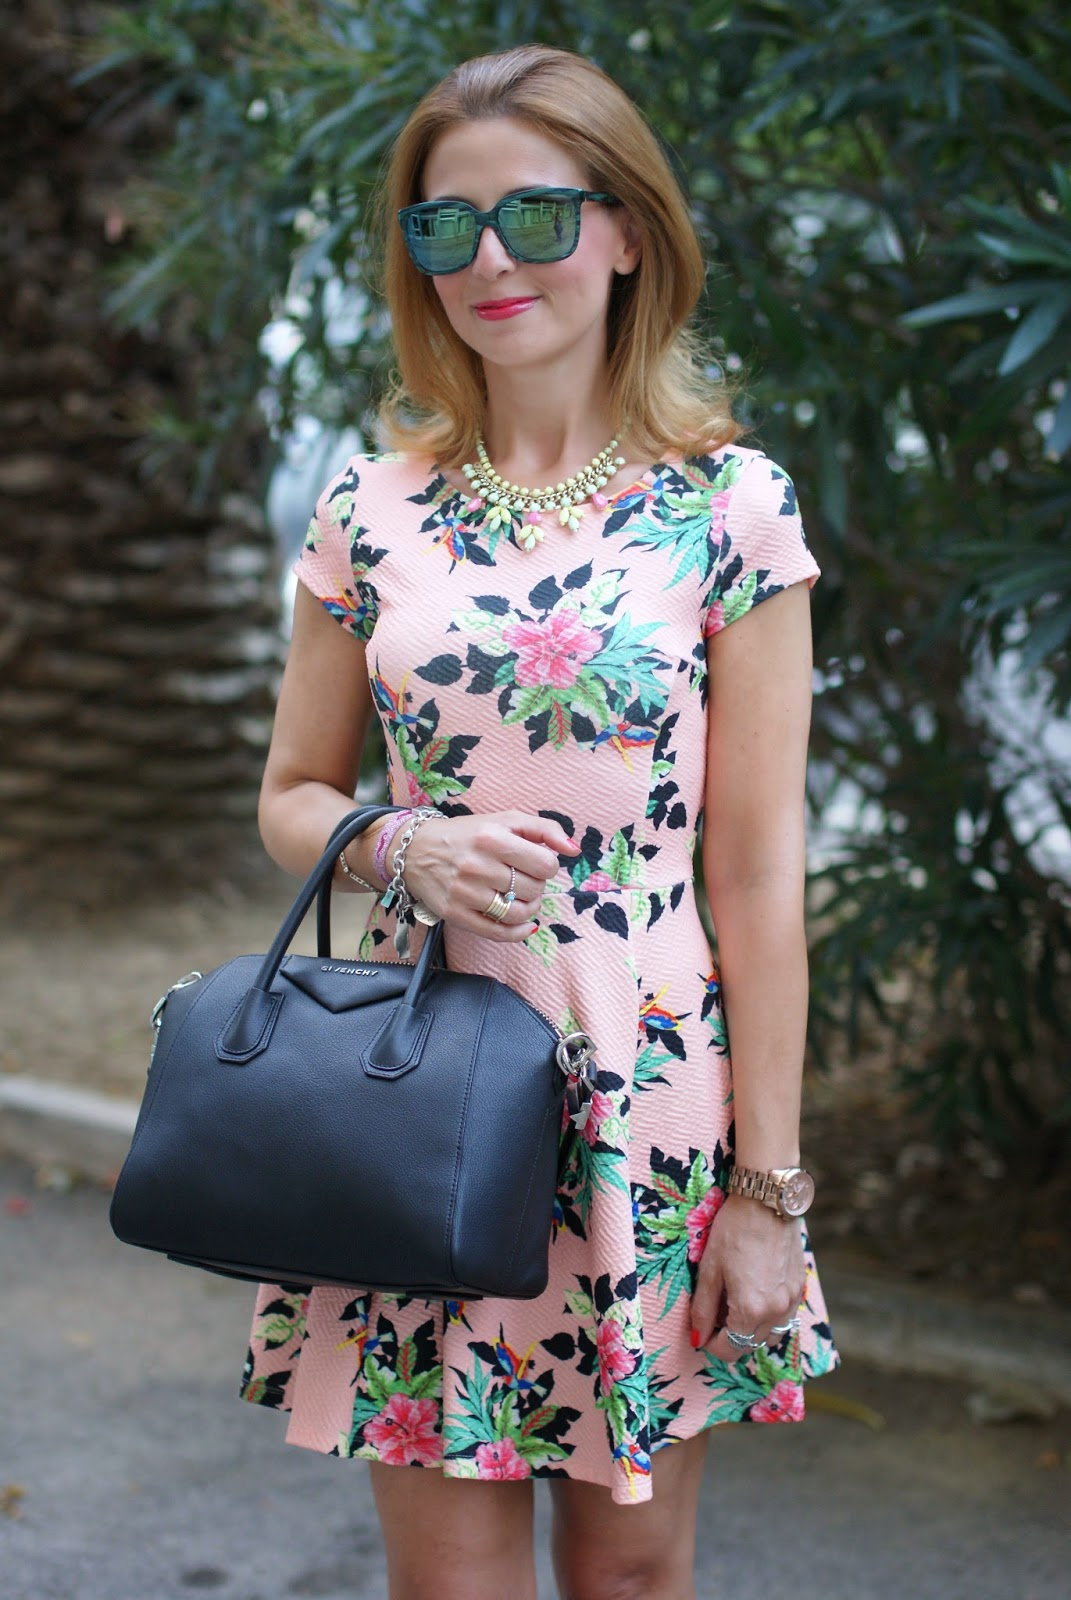 hypeglass green sunglasses, bershka floral dress, Givenchy Antigona small, Fashion and Cookies, fashion blogger